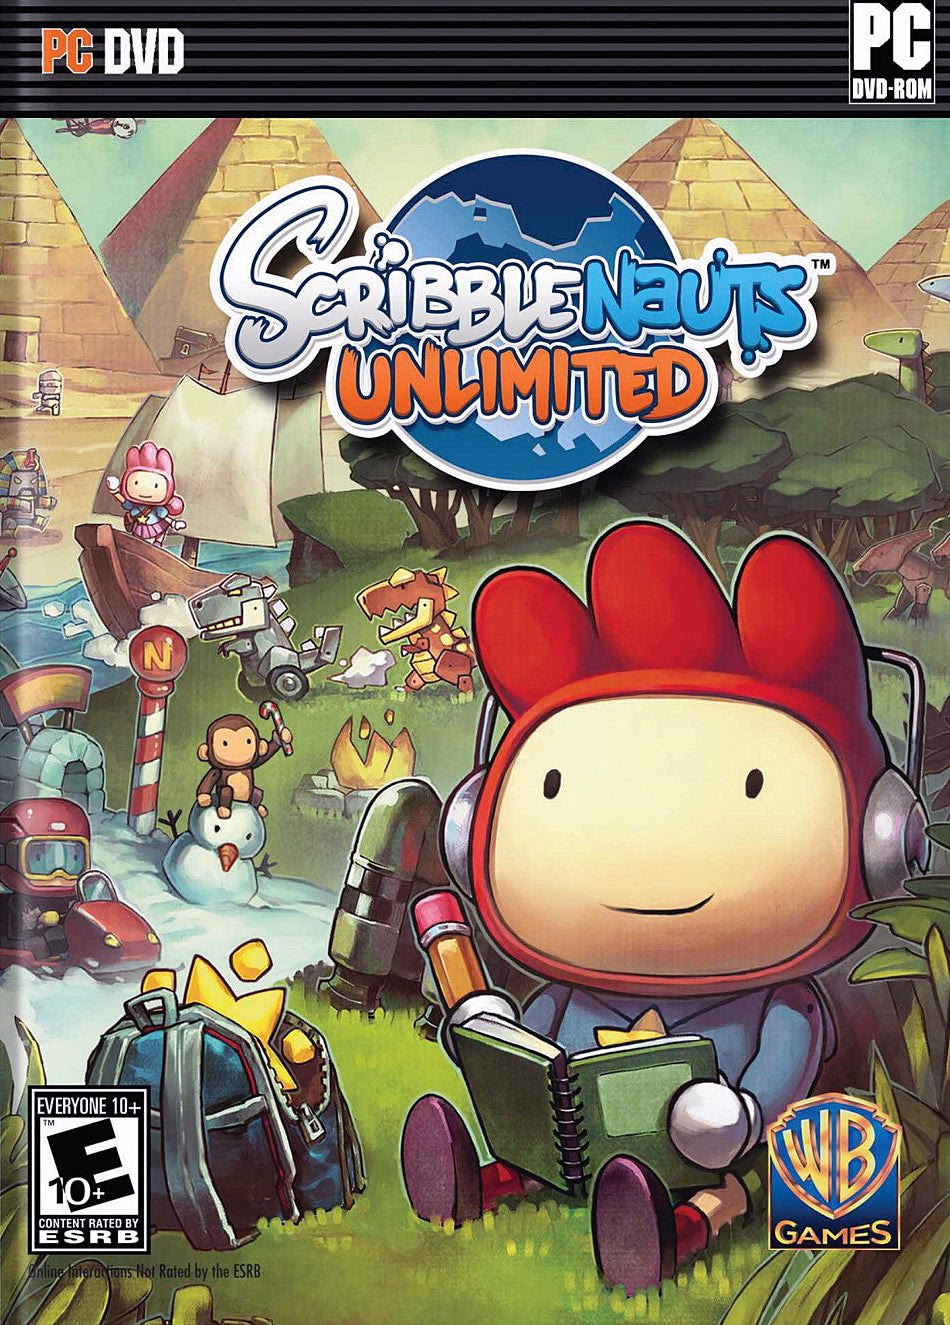 Scribblenauts Unlimited PC Review - IGN